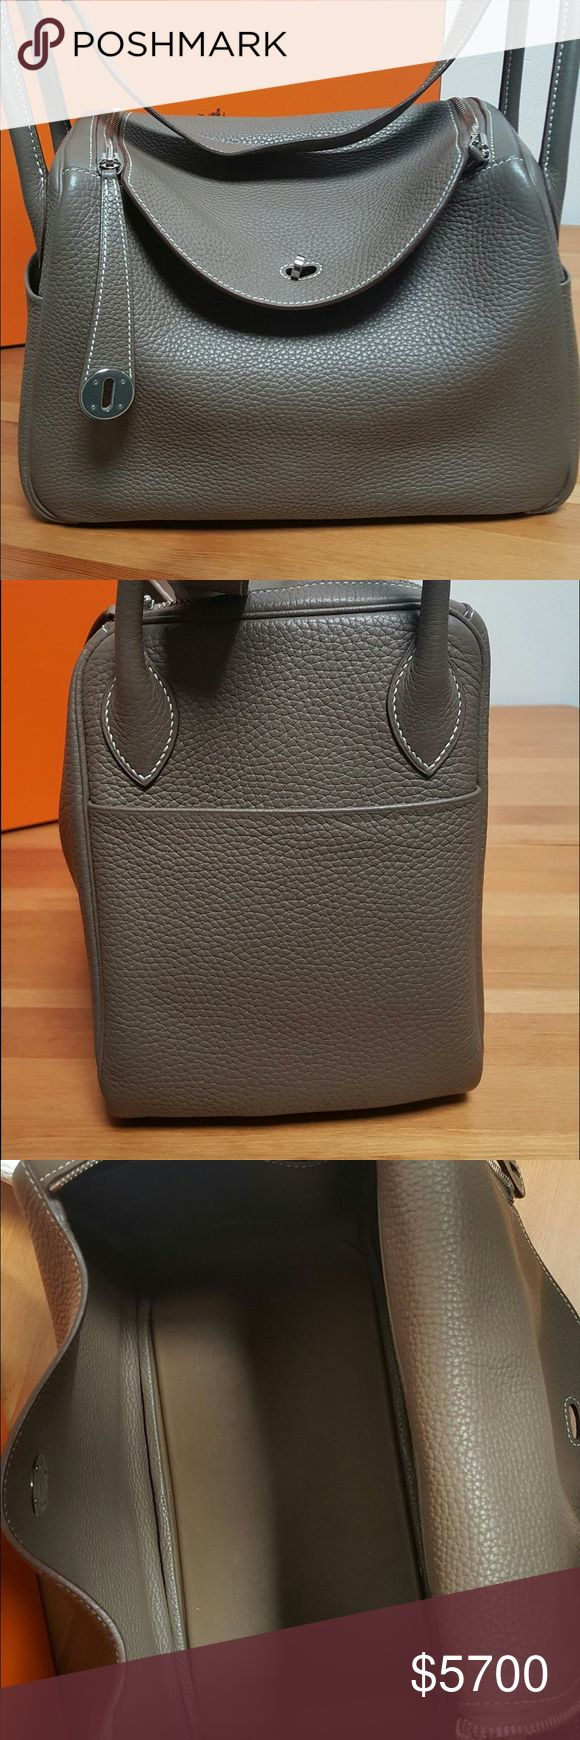 Hermes Lindy 30 Comes with the dust bag, box. Like new condition. Leave your email below if you would like to request additional photos. I will only provide a photo of the receipt once the bag is purchased. So please do not ask. 100% Authentic. Hermes Bags Shoulder Bags